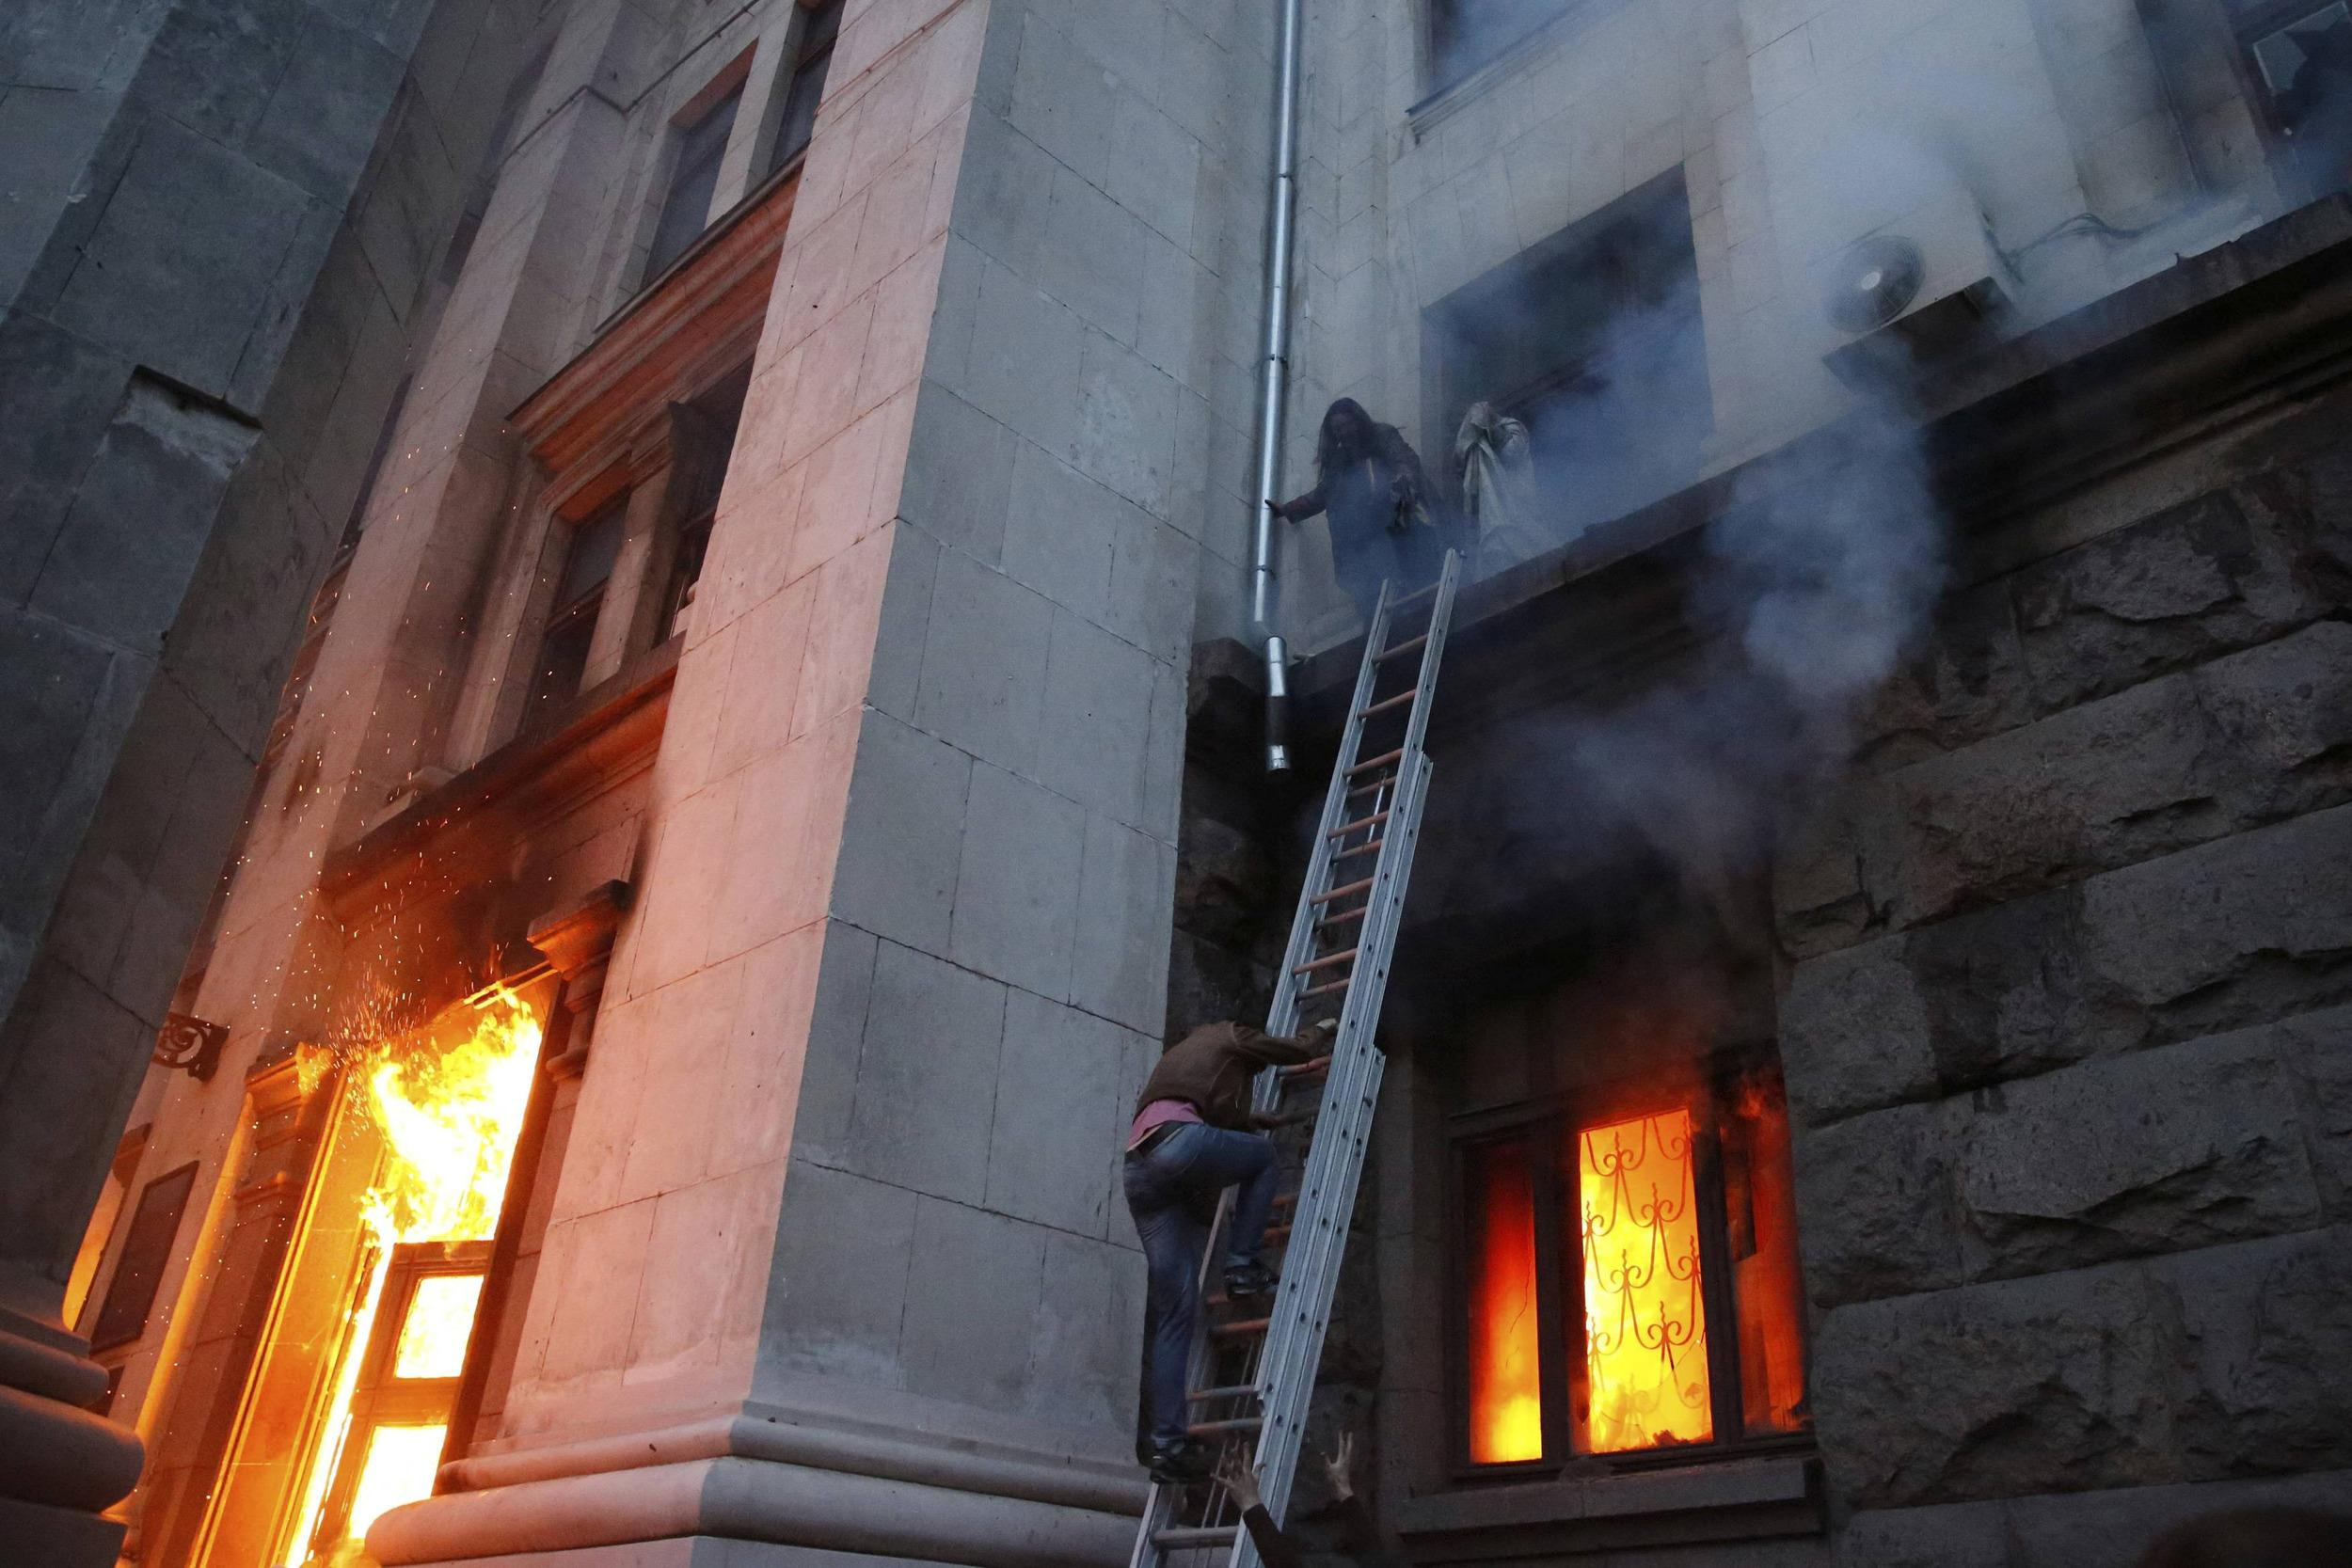 Image: People wait to be rescued on the second storey's ledge during a fire at the trade union building in Odessa